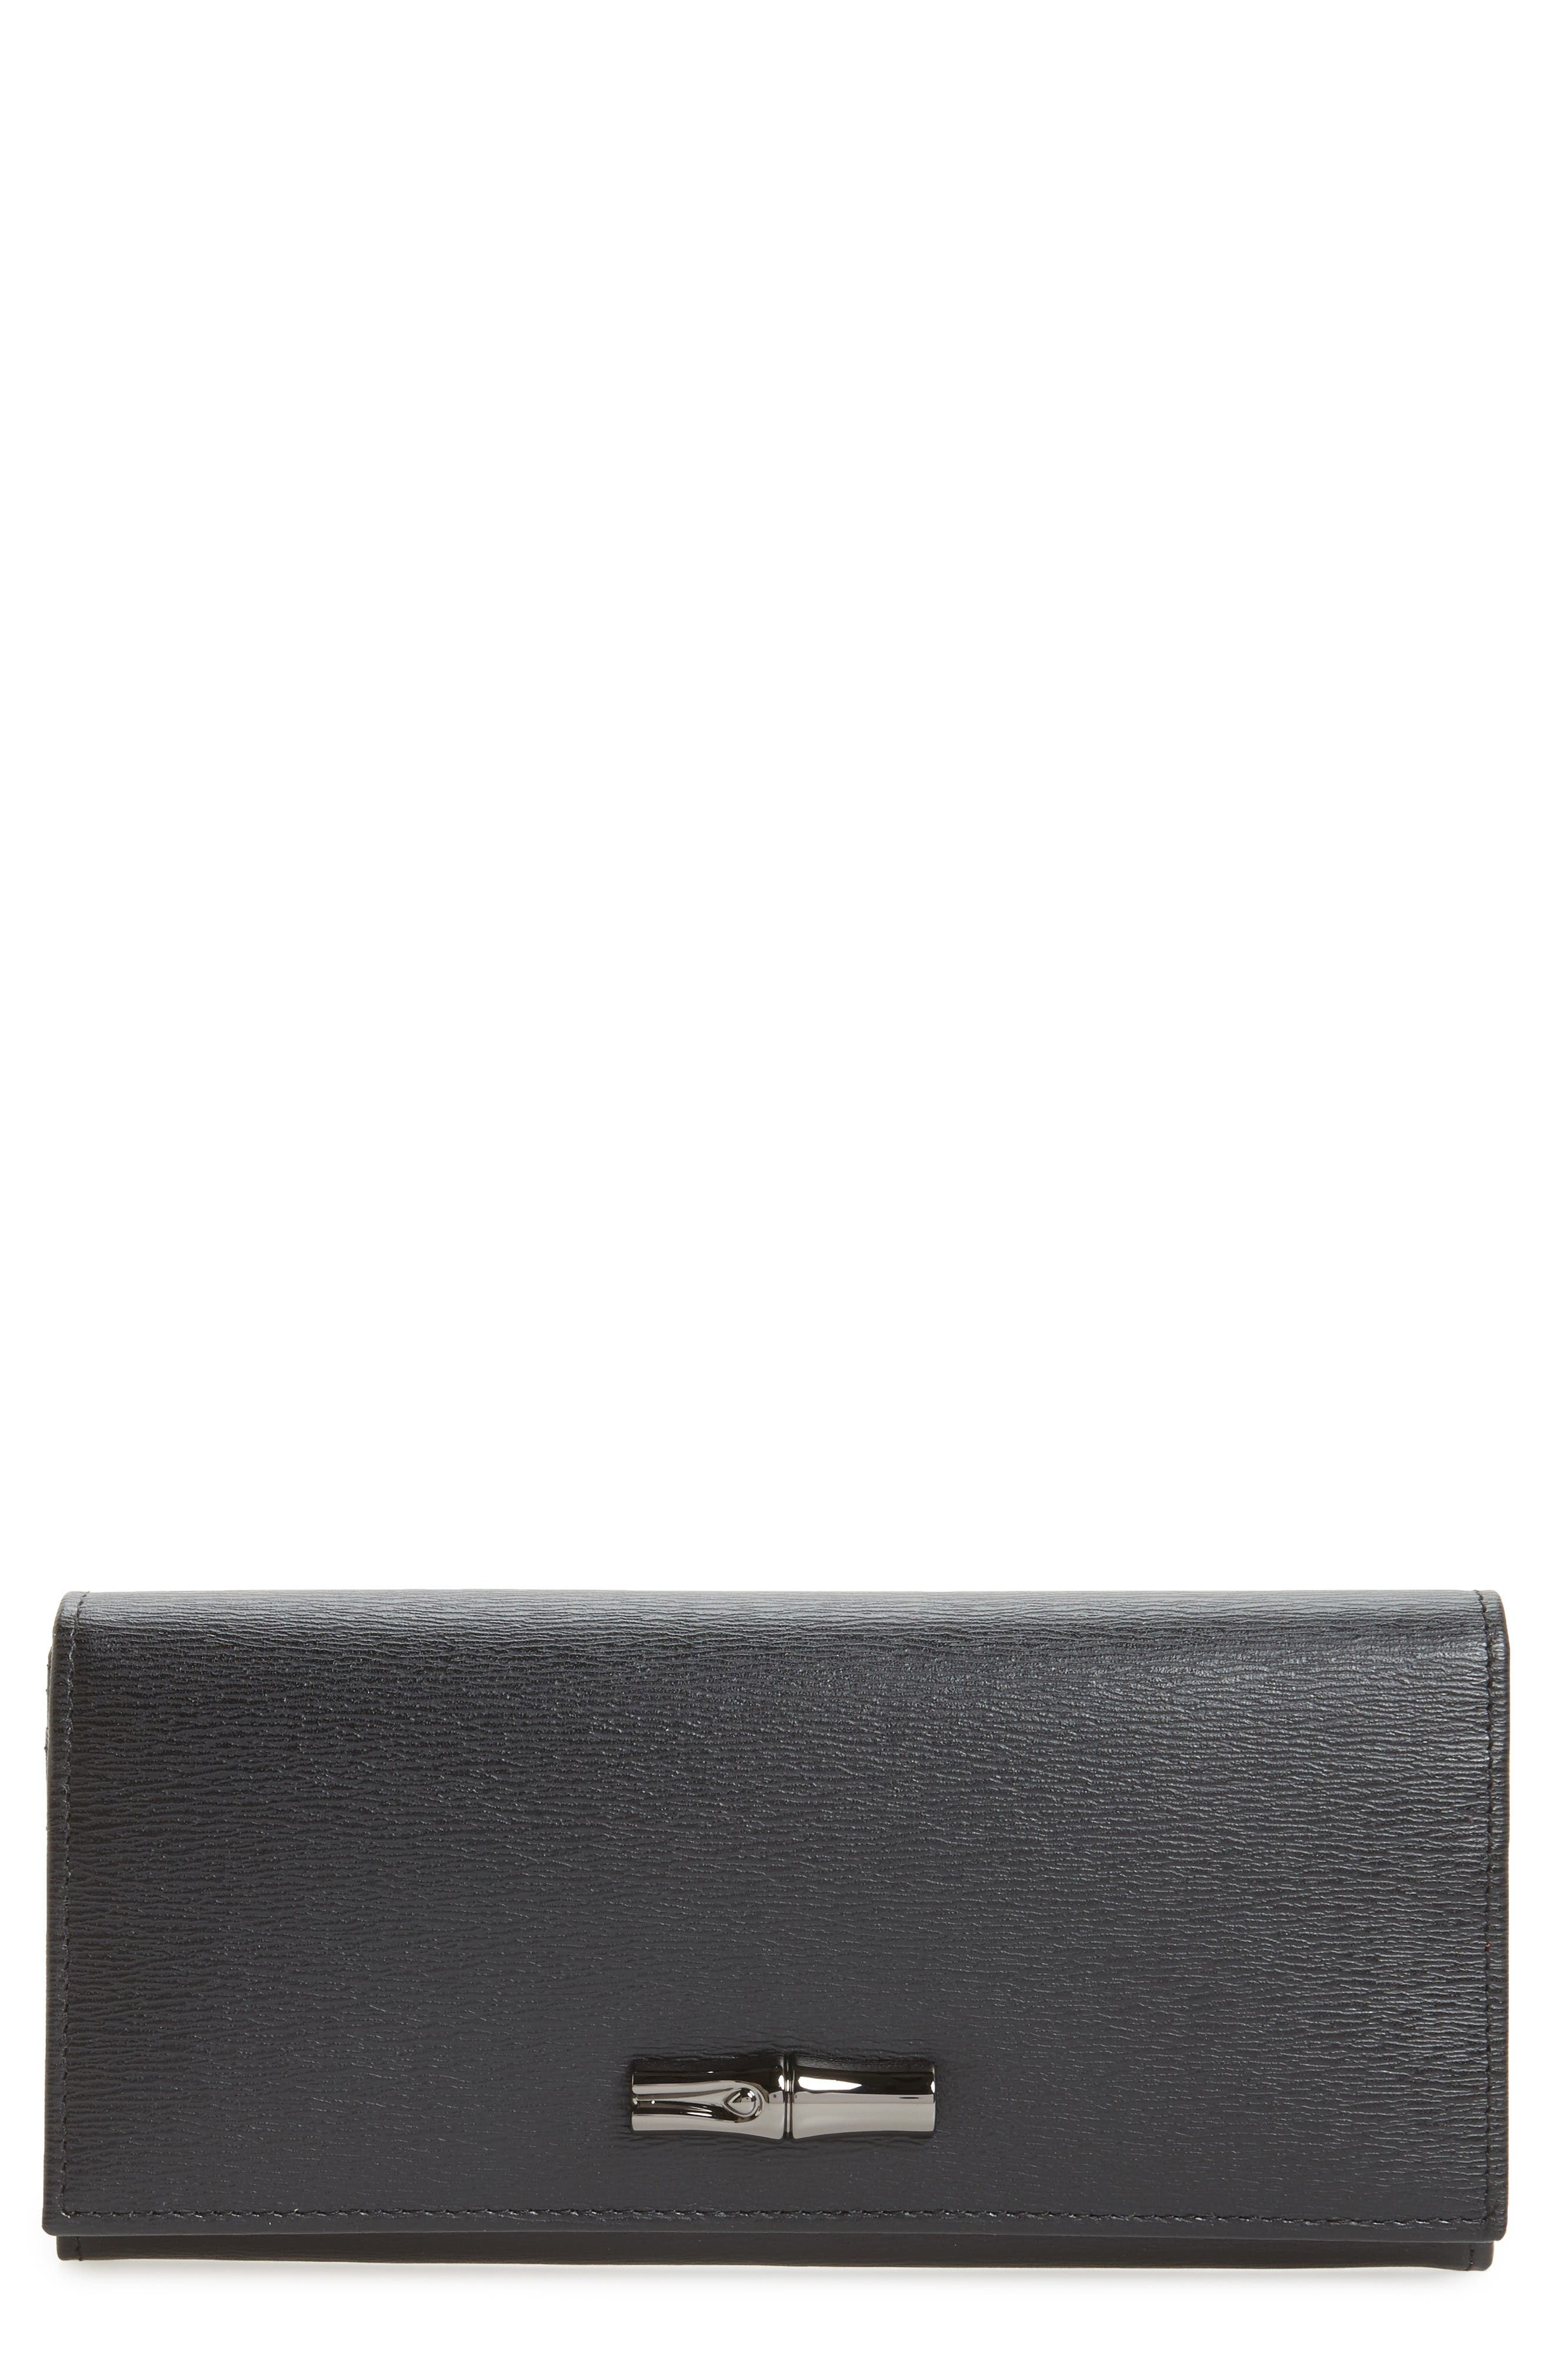 Longchamp Roseau Leather Continental Wallet